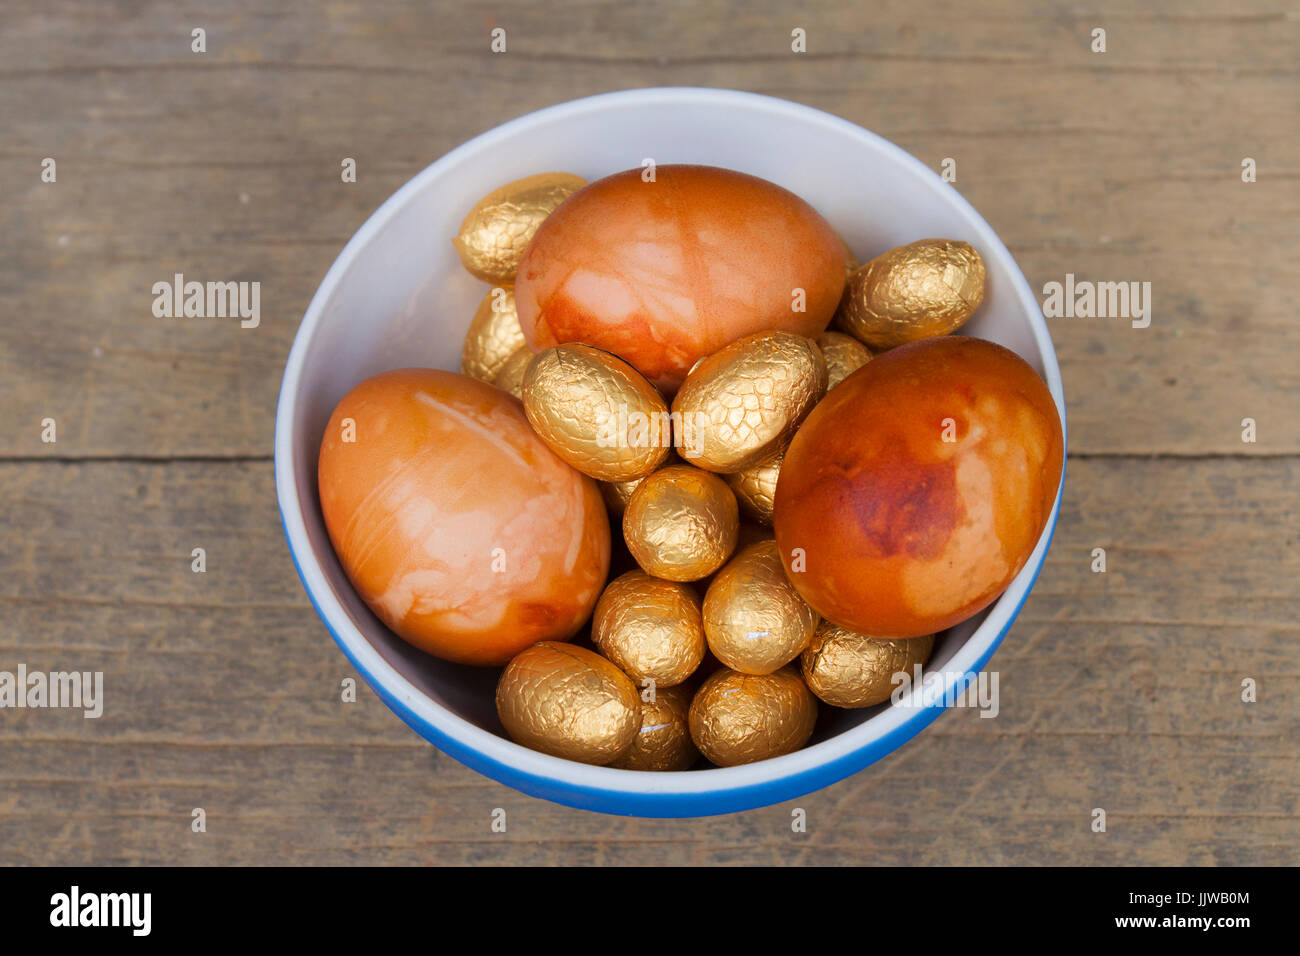 Golden Easter eggs in a bowl. Onions were used to give them an aesthetically pleasing golden look. - Stock Image